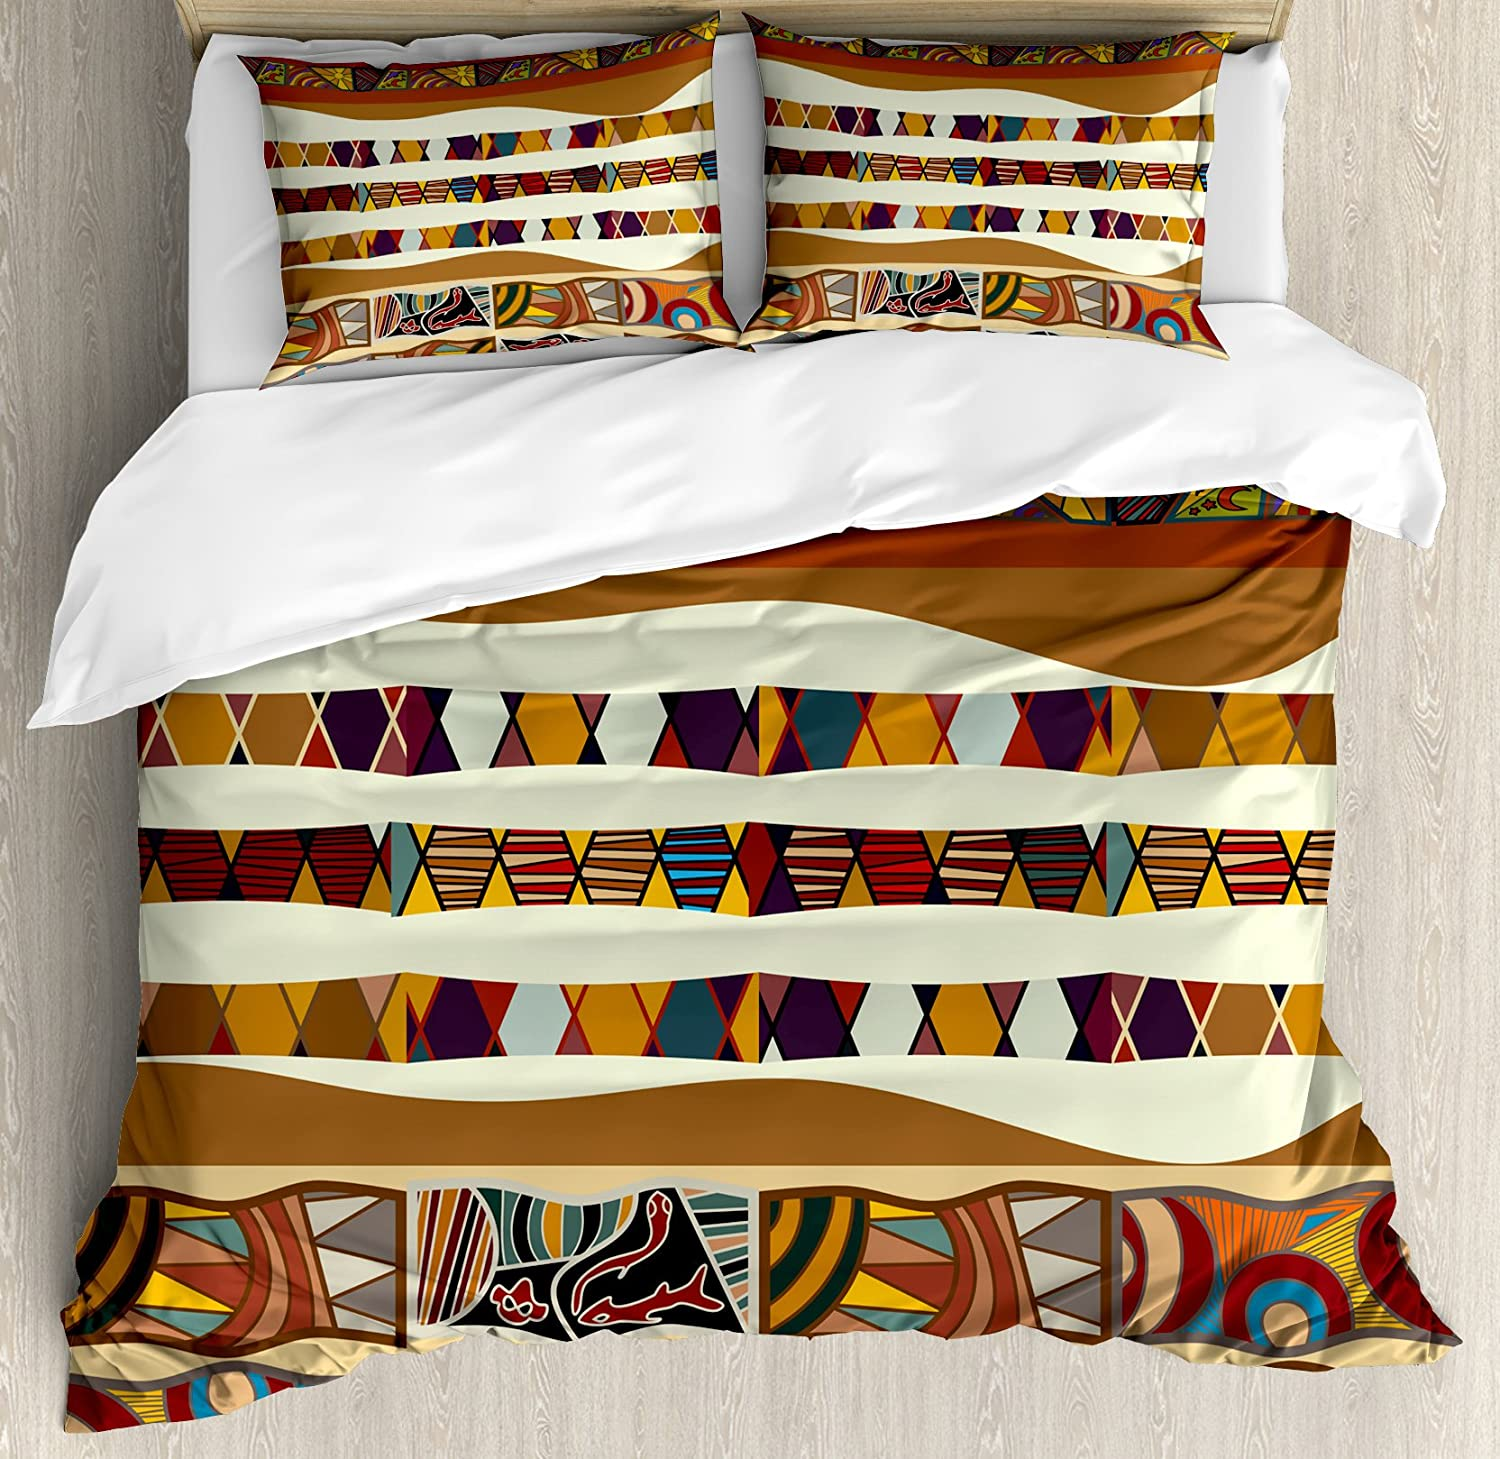 Ambesonne Tribal Duvet Cover Set King Size, Traditional African Folk with Cultural Featured Trippy Icons In Boho Abstract Design Theme, A Decorative 3 Piece Bedding Set with 2 Pillow Shams, Multicolor